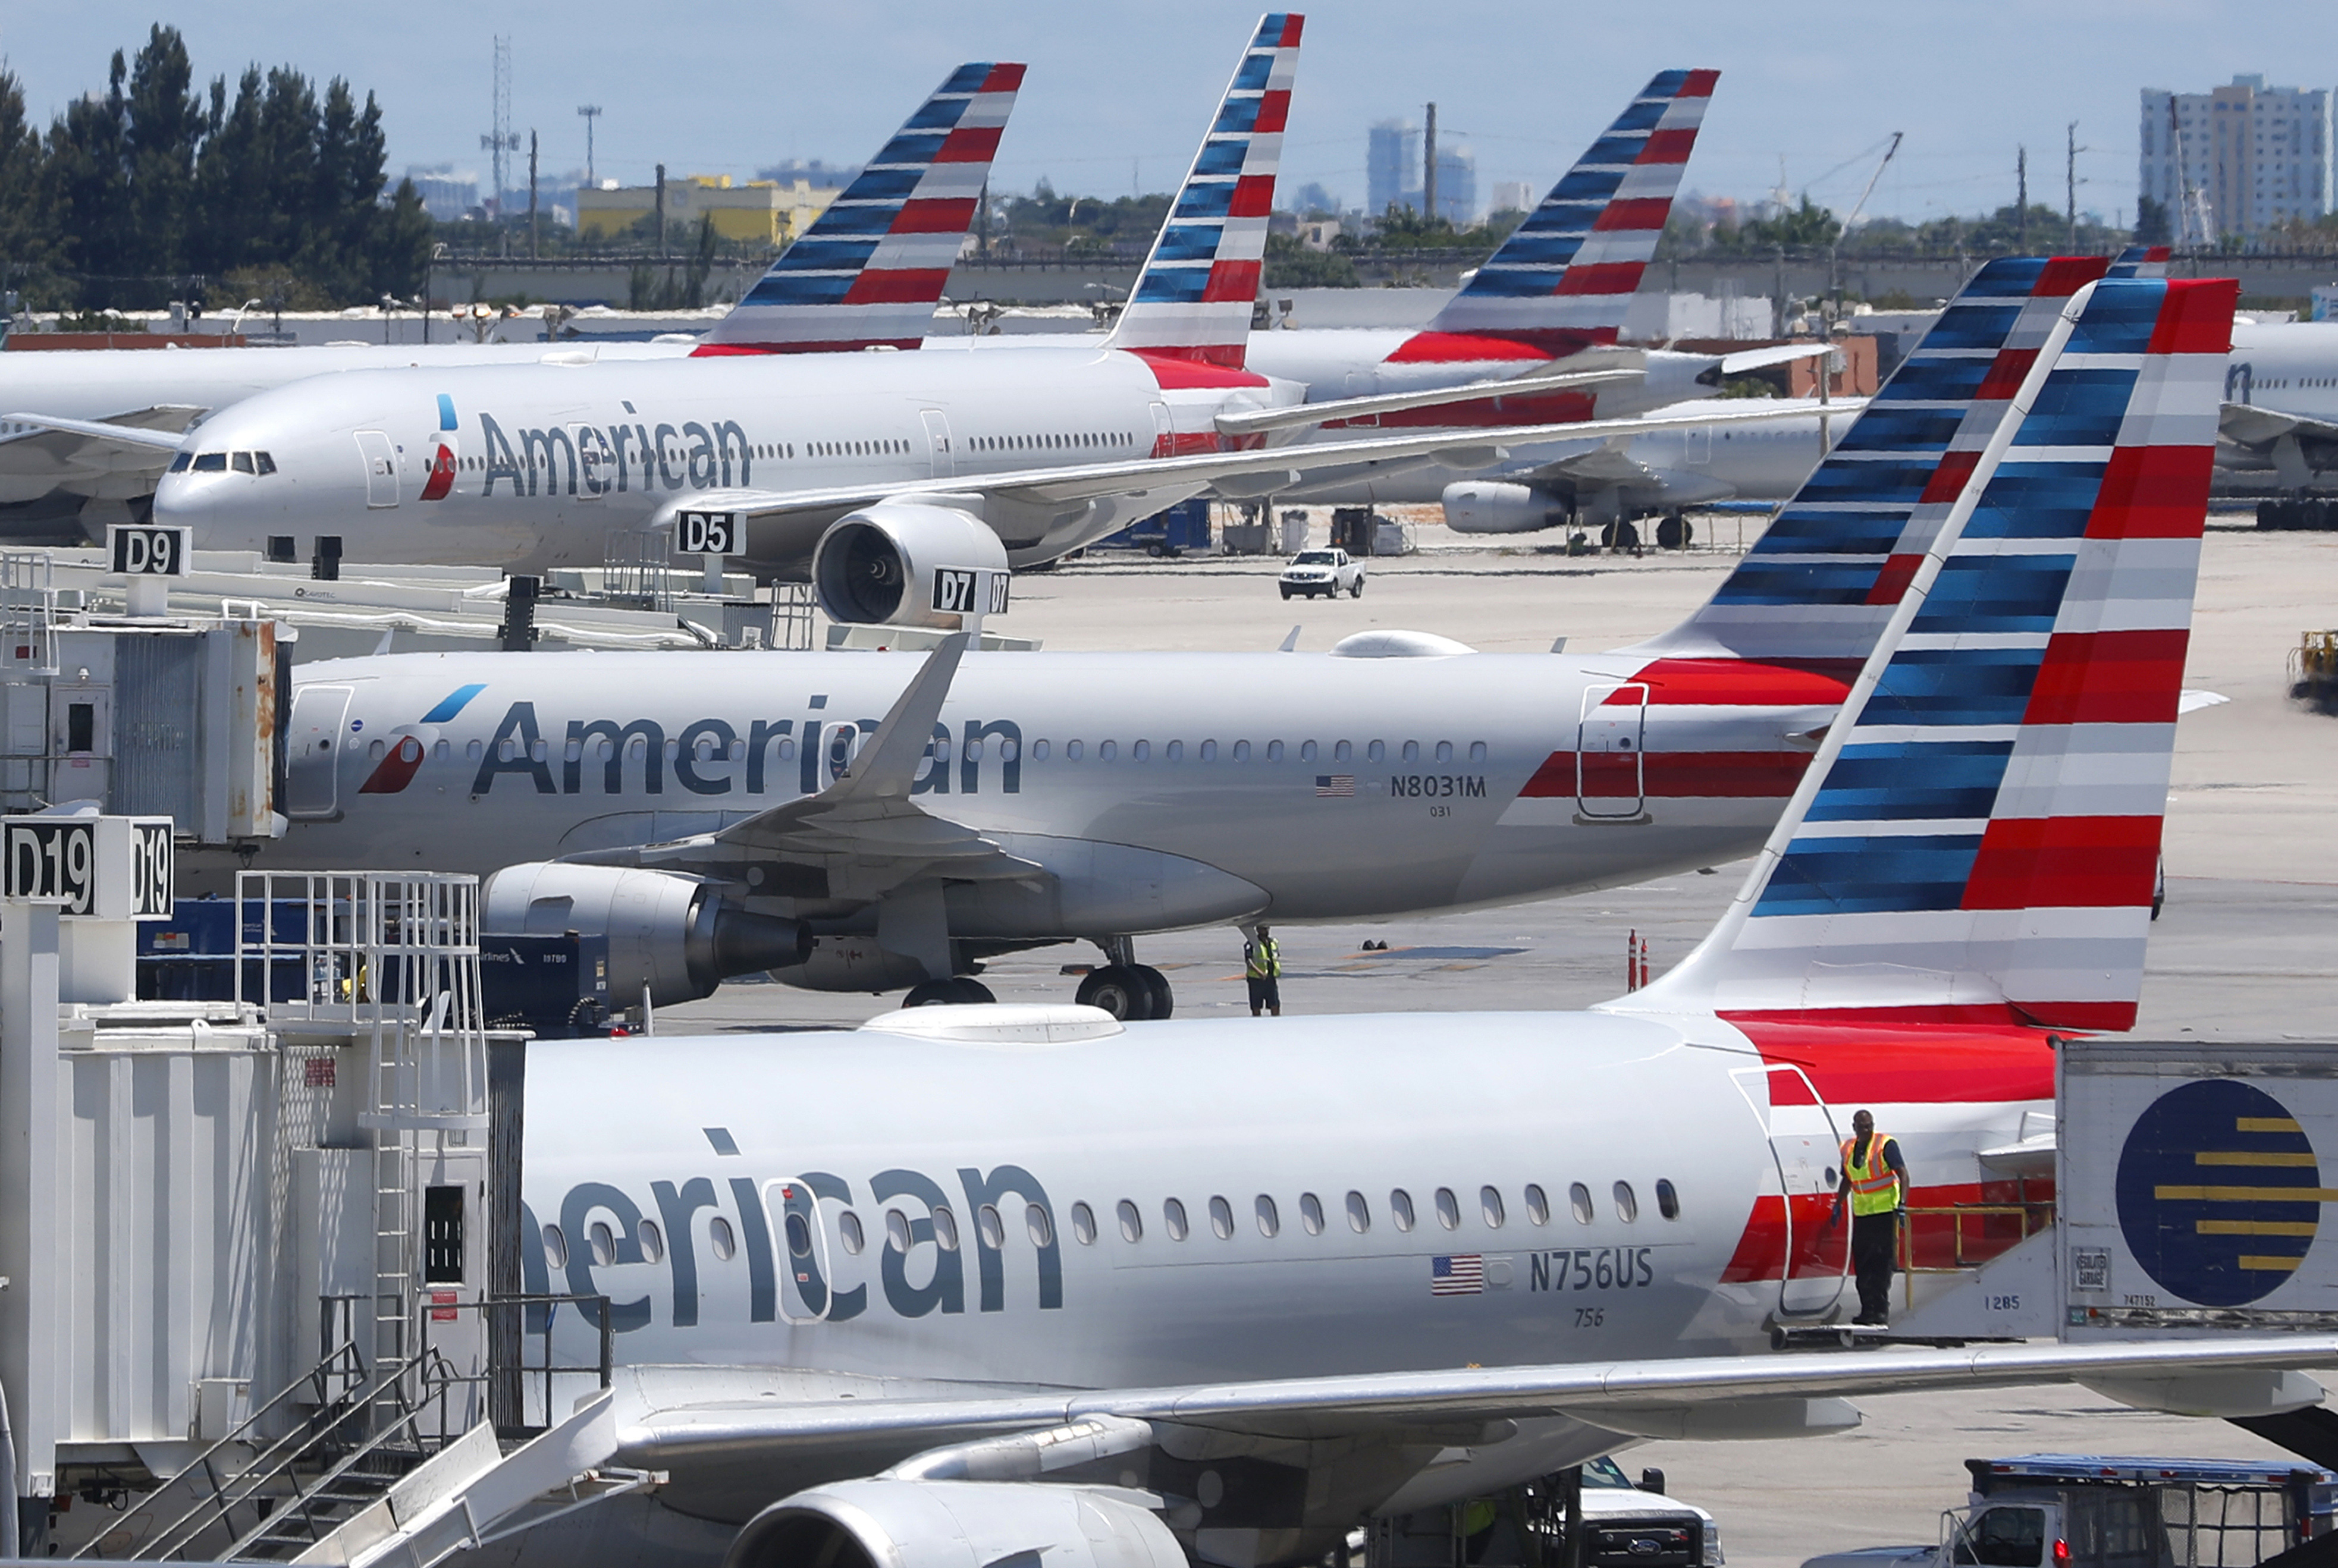 American Airlines aircraft are shown parked at their gates at Miami International Airport in Miami.